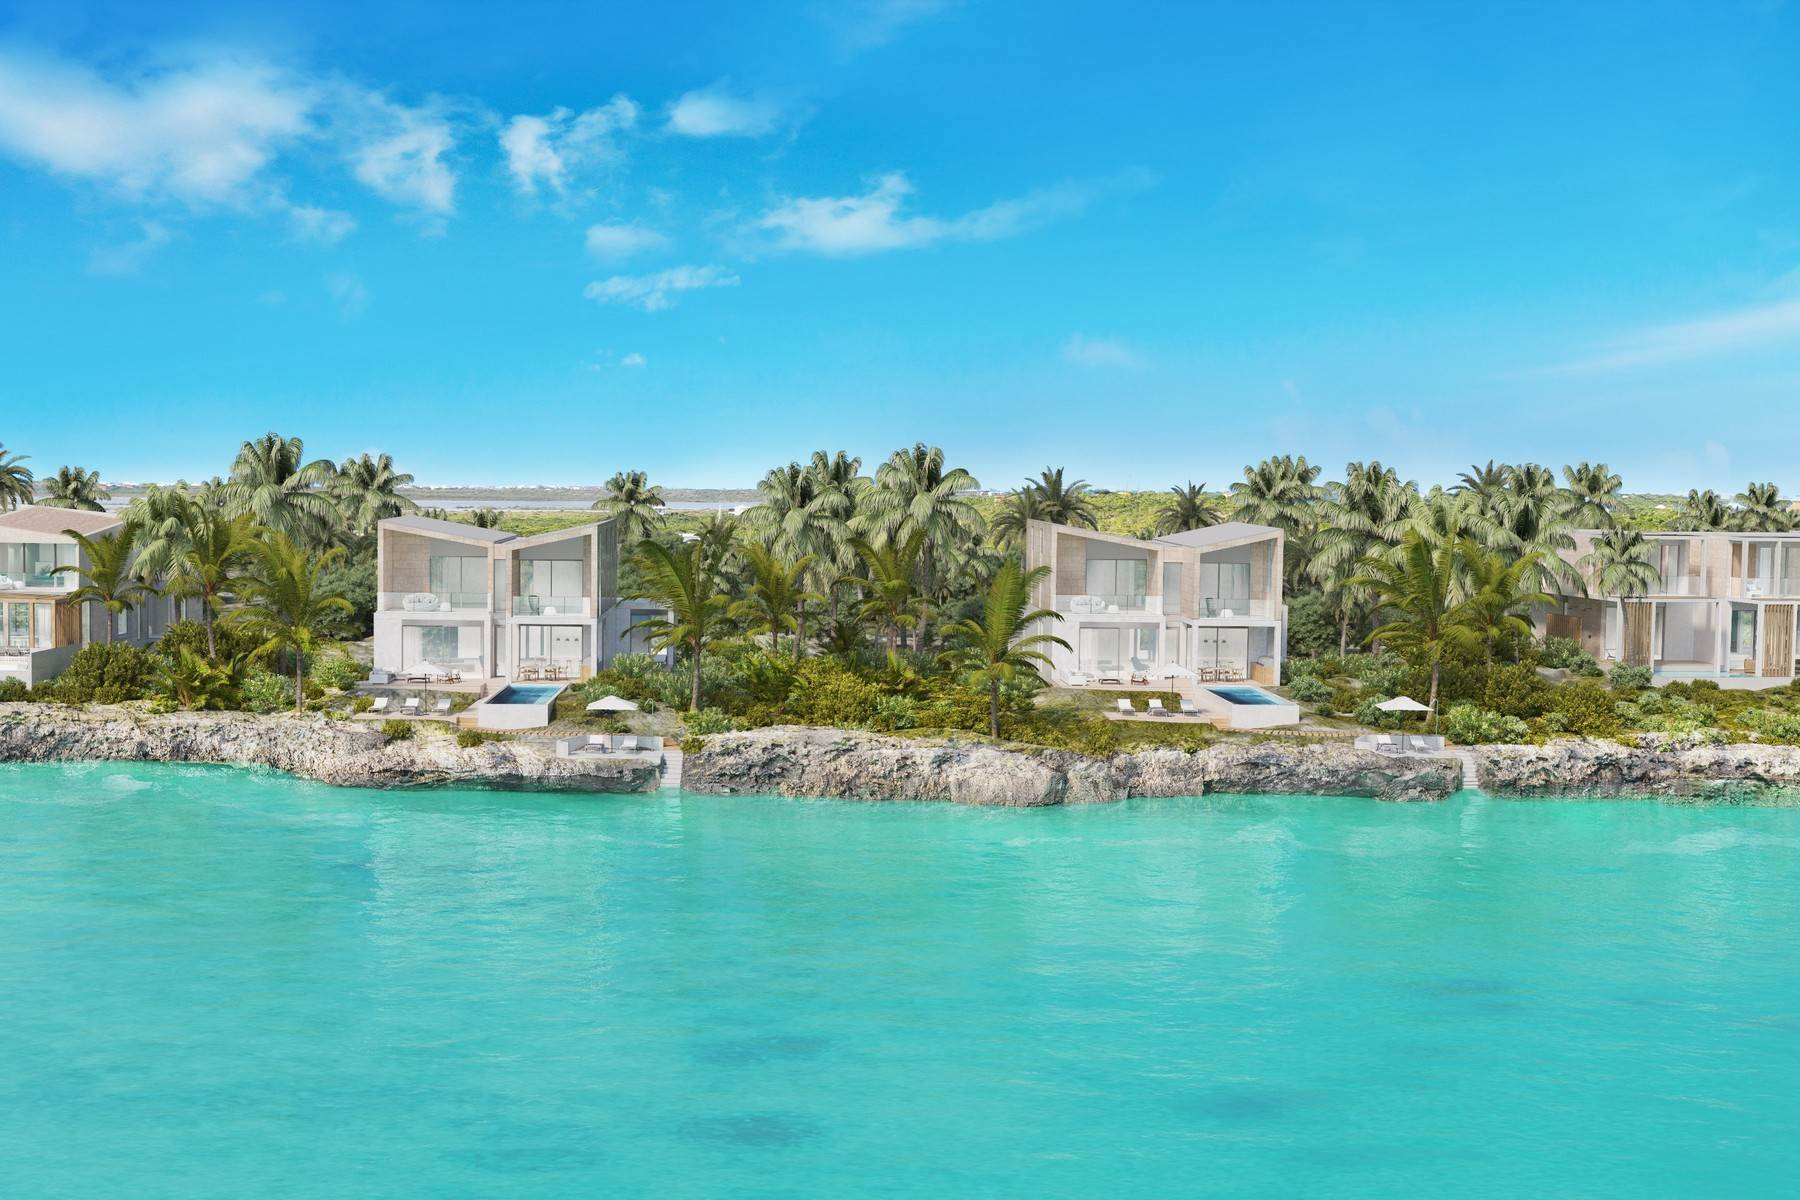 Single Family Homes for Sale at SOUTH BANK - THE OCEAN ESTATE II - REEF VILLA - VILLA 19 South Bank, Long Bay, Providenciales Turks And Caicos Islands